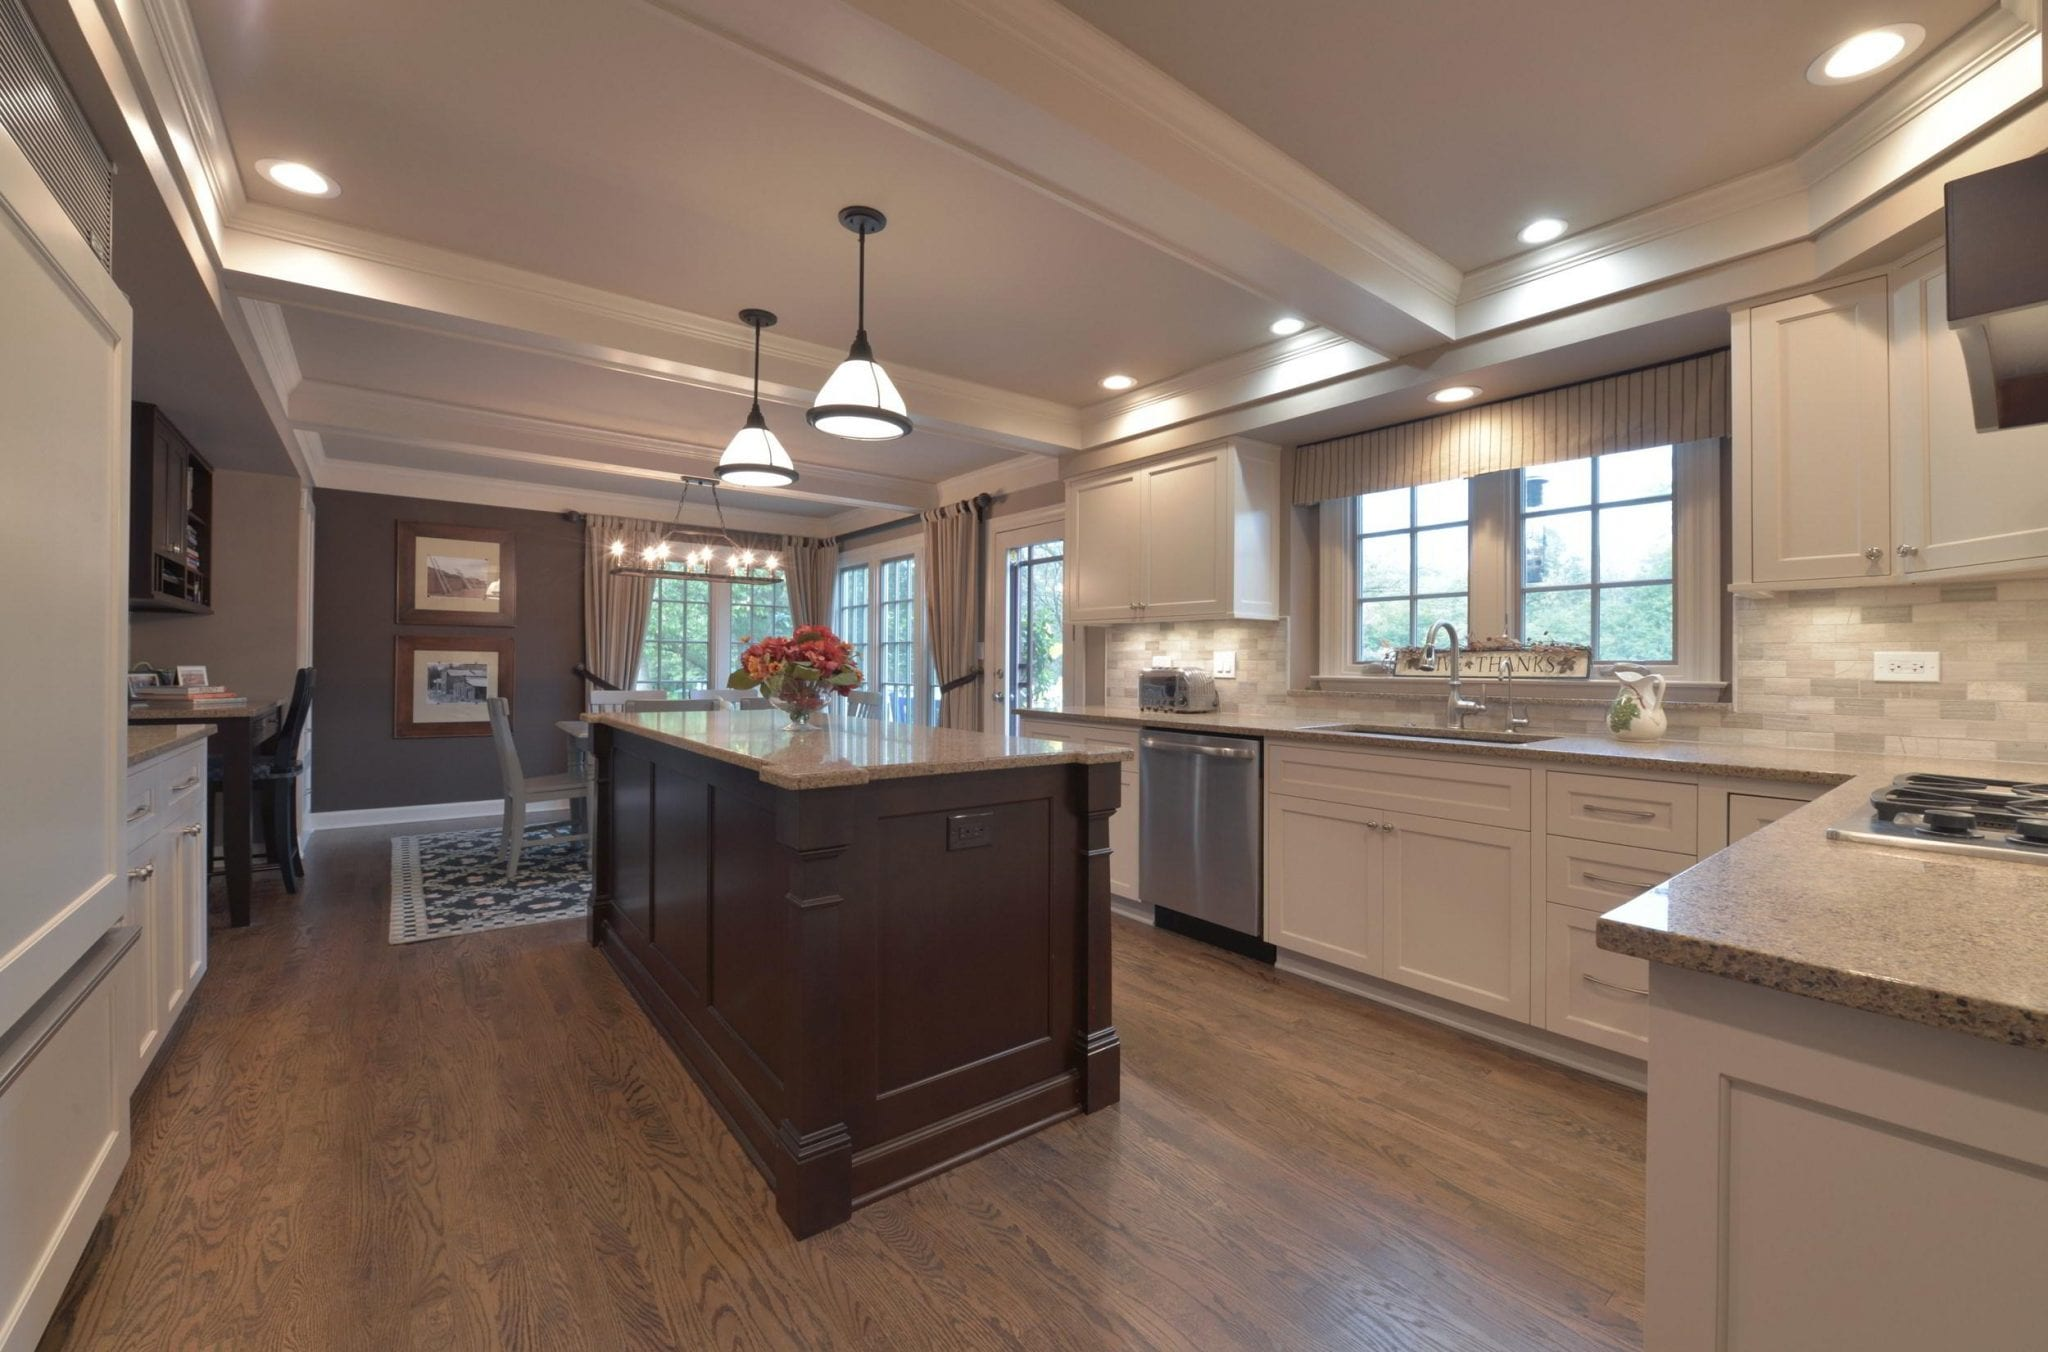 This traditional style kitchen was designed using the existing floor plan.